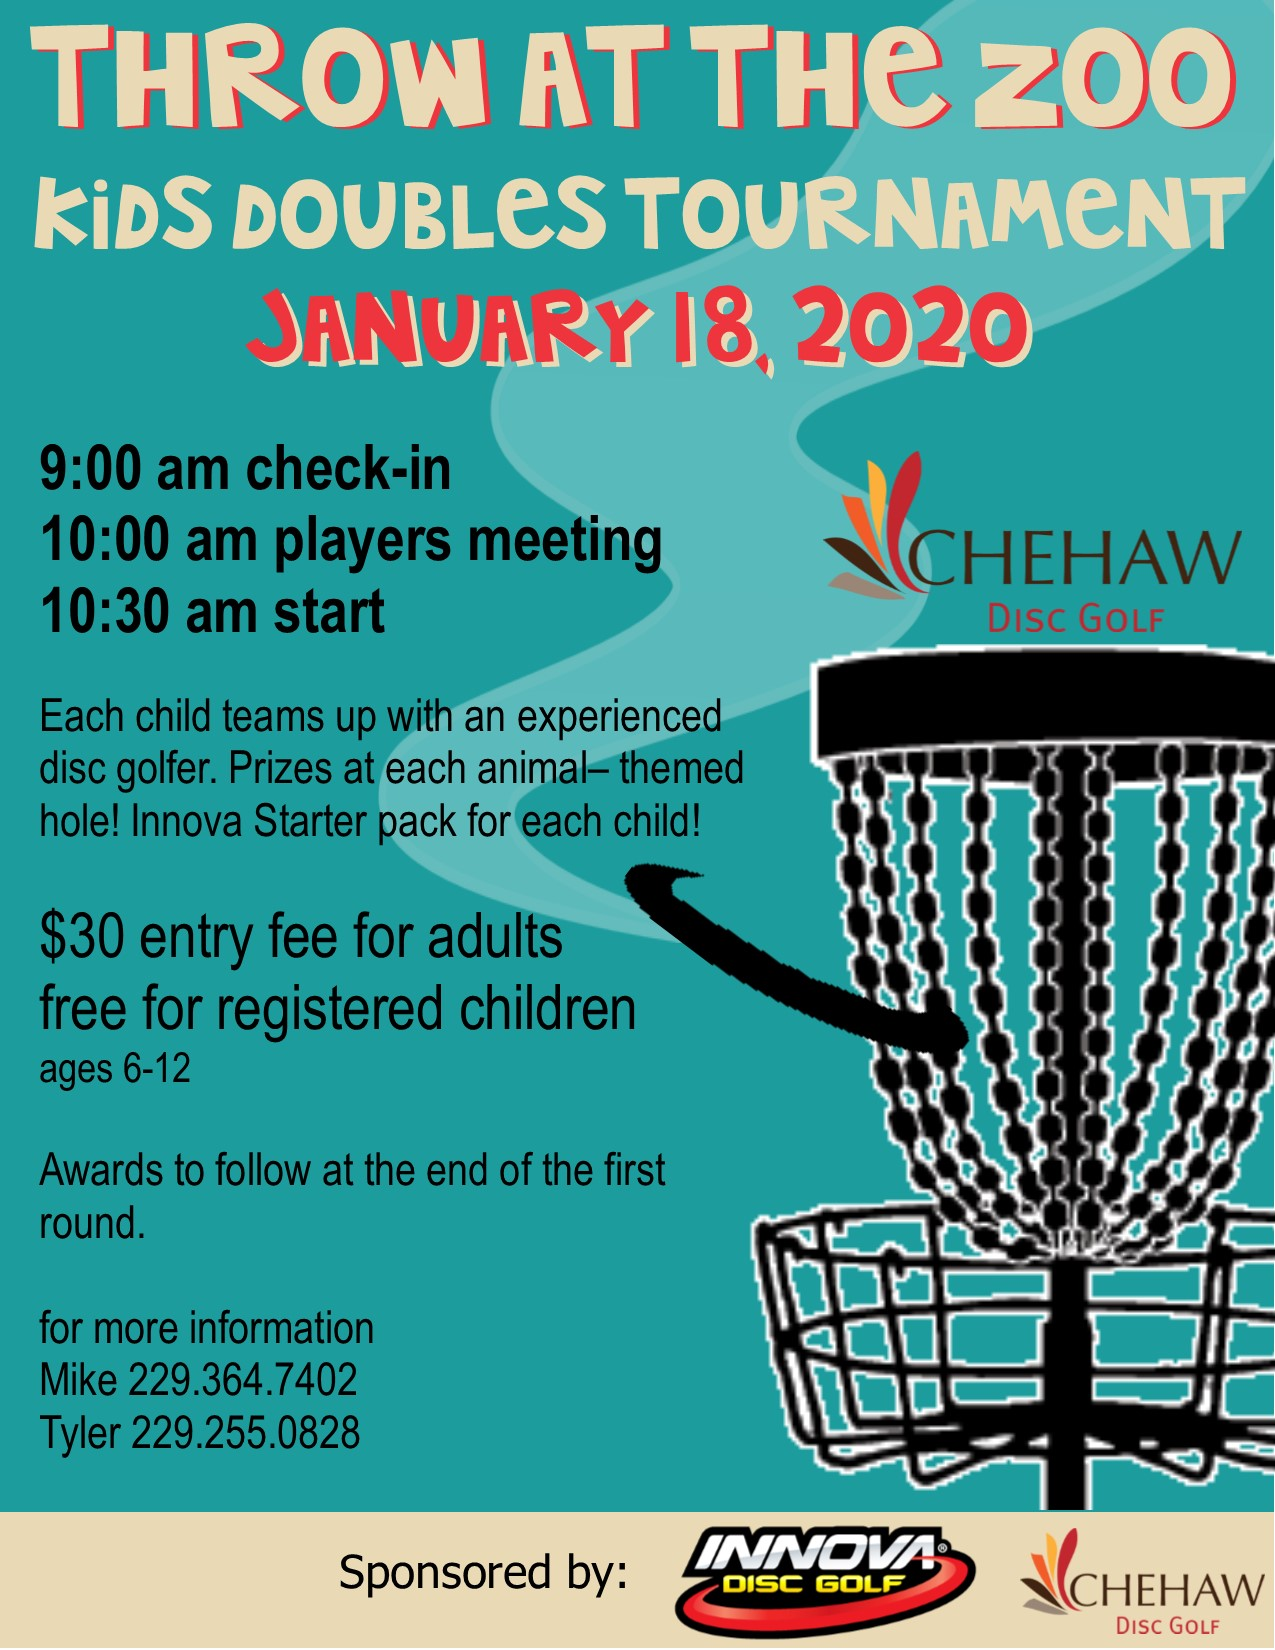 Jan 18- Throw at the Zoo Disc Golf Kids Tournament